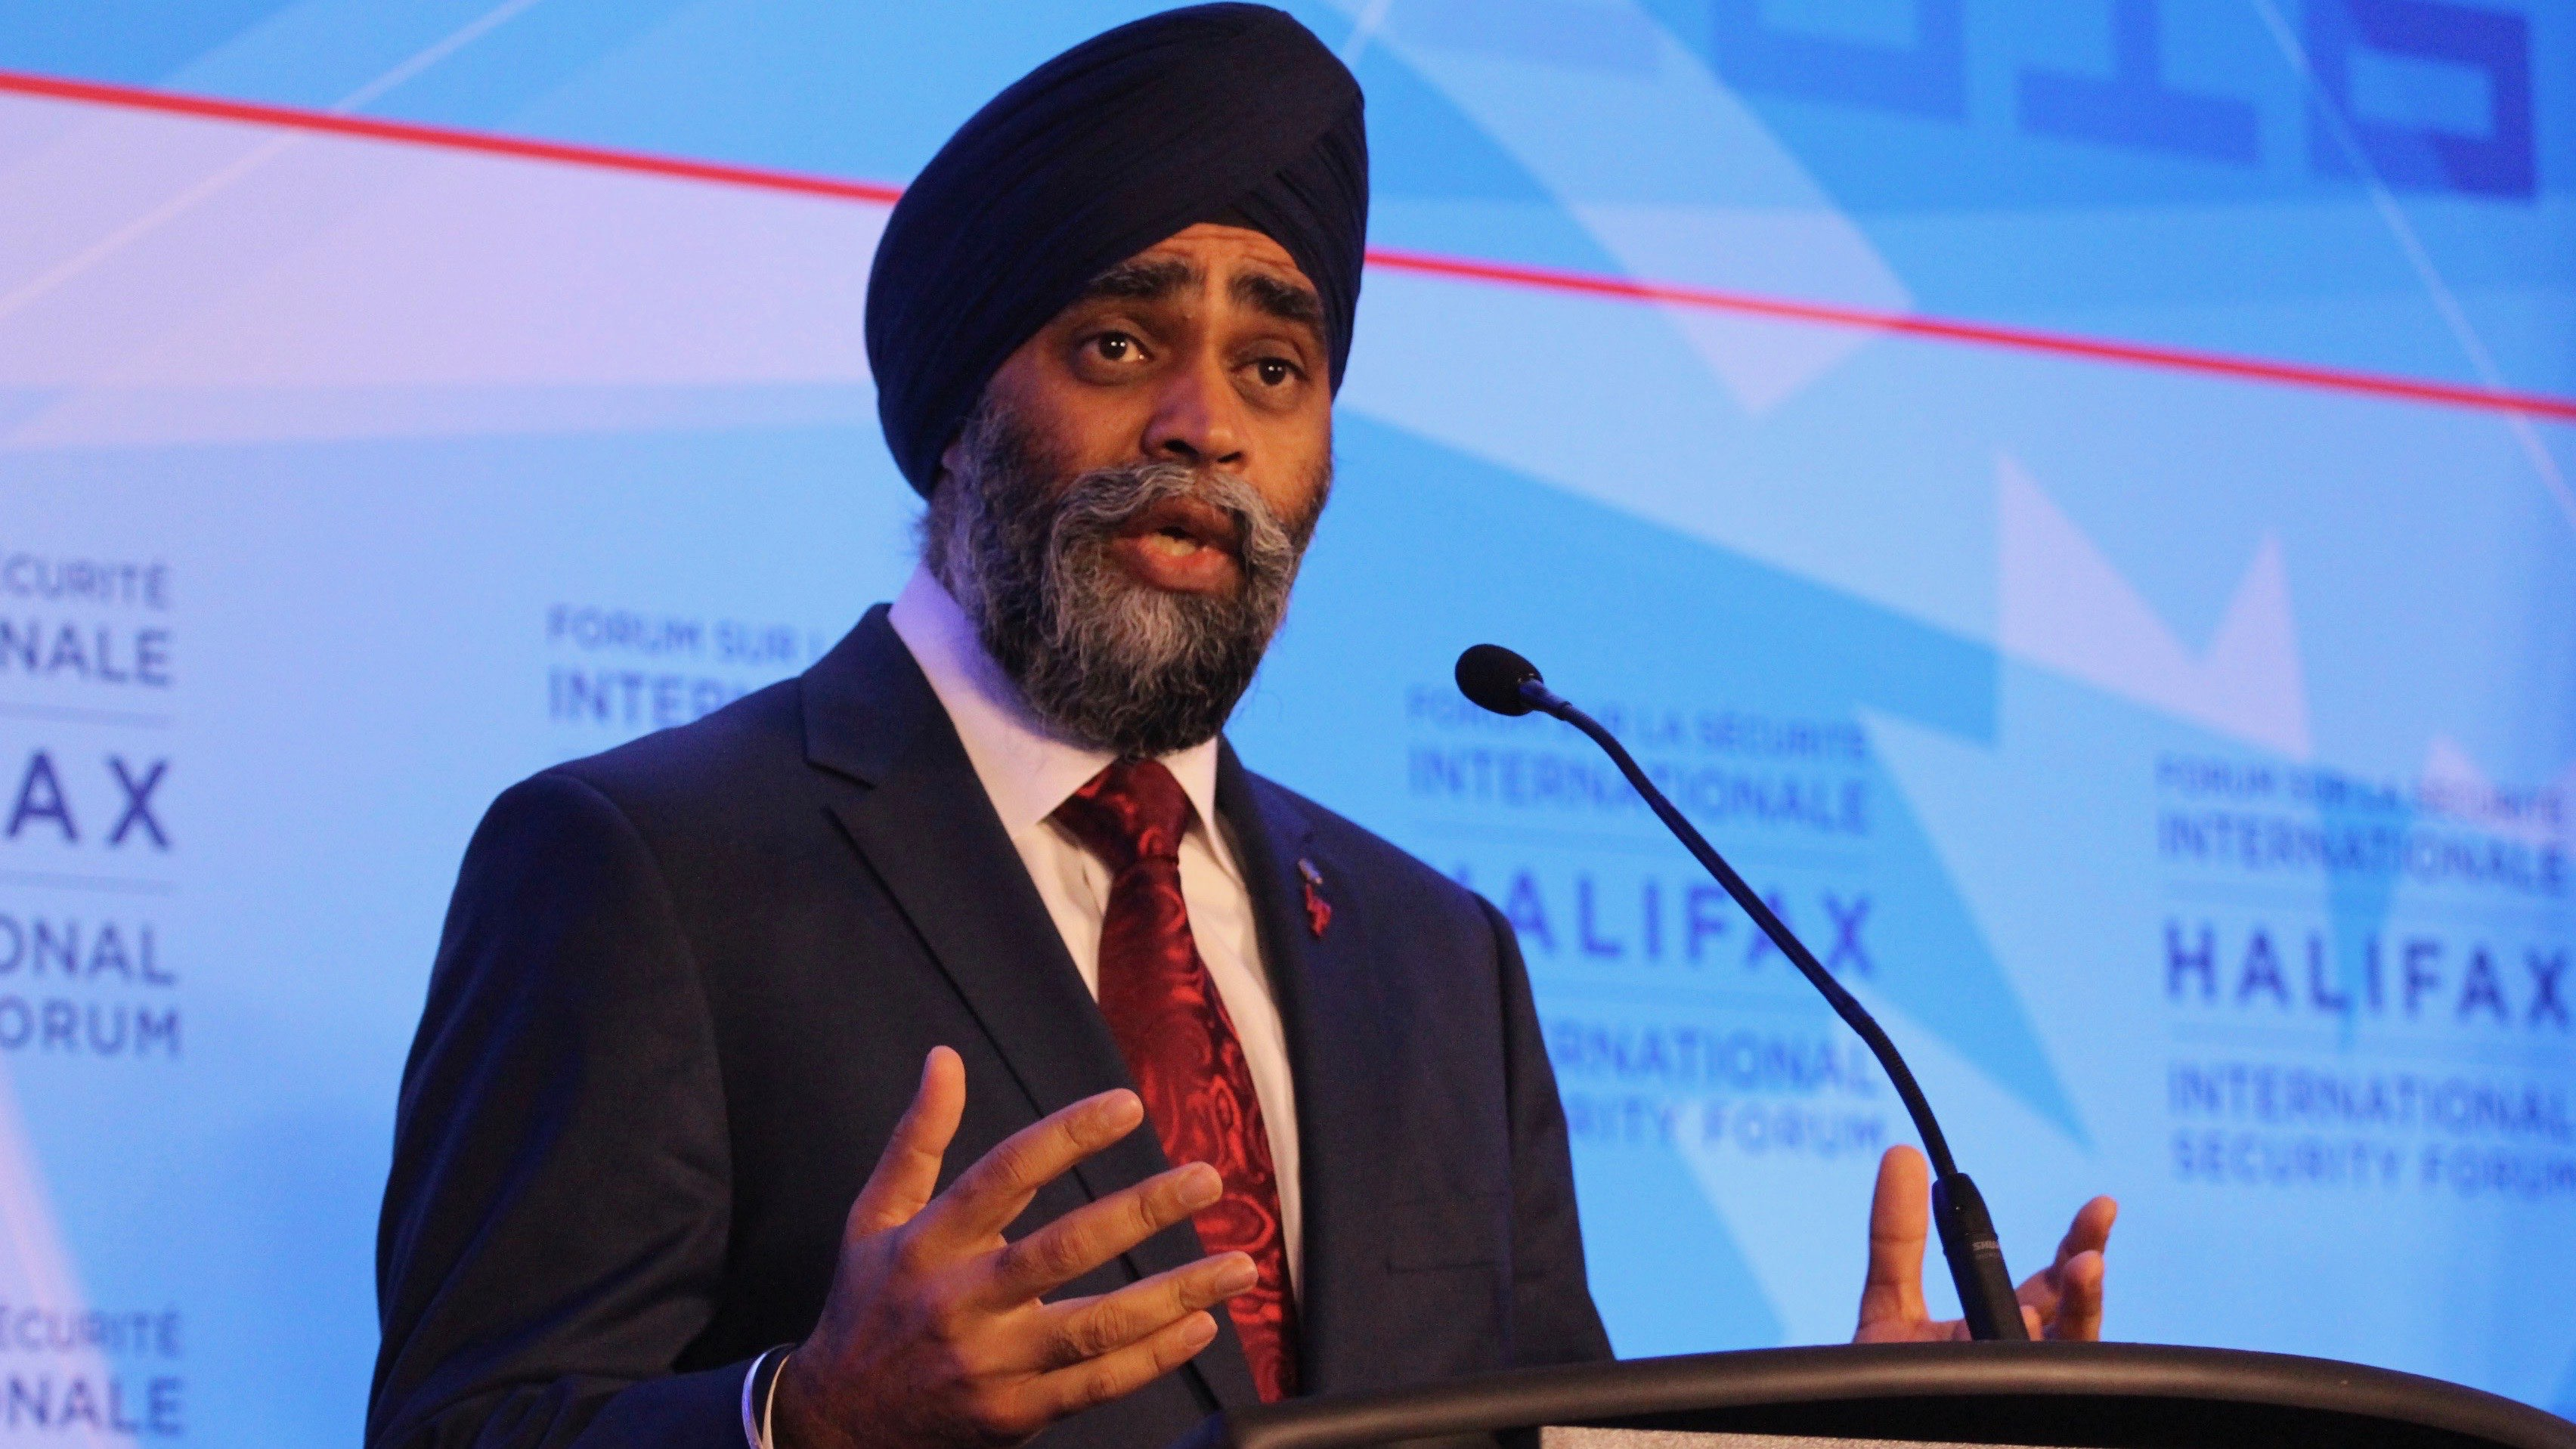 Harjit Singh Sajjan addresses the media Friday morning at last year's conference.